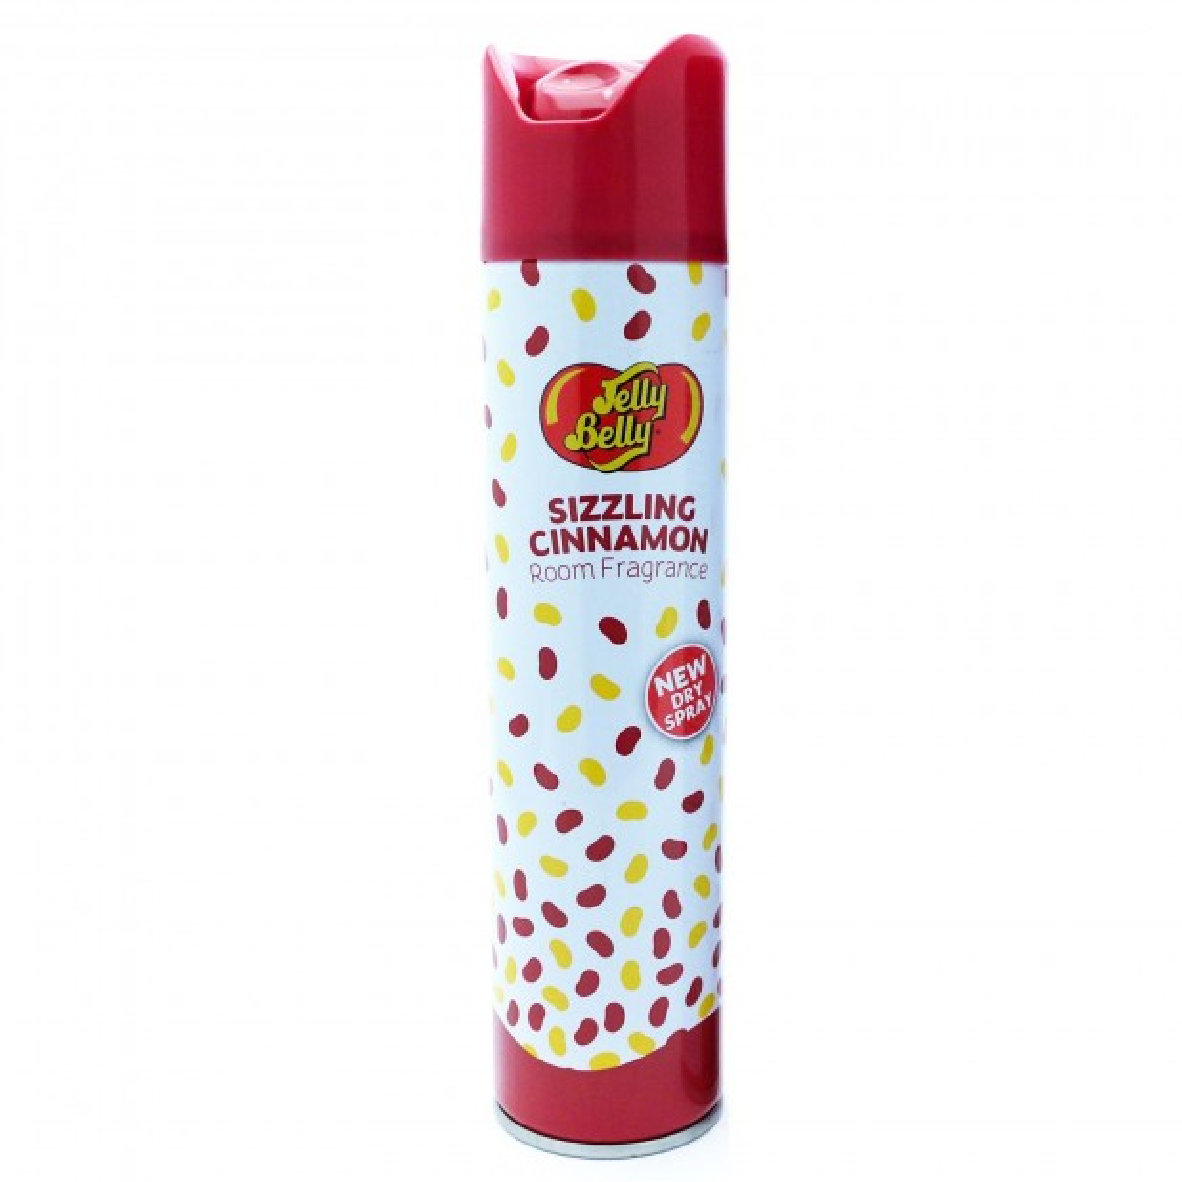 Jelly Belly Sizzling Cinanamon Room Fragrance 300ml - product image